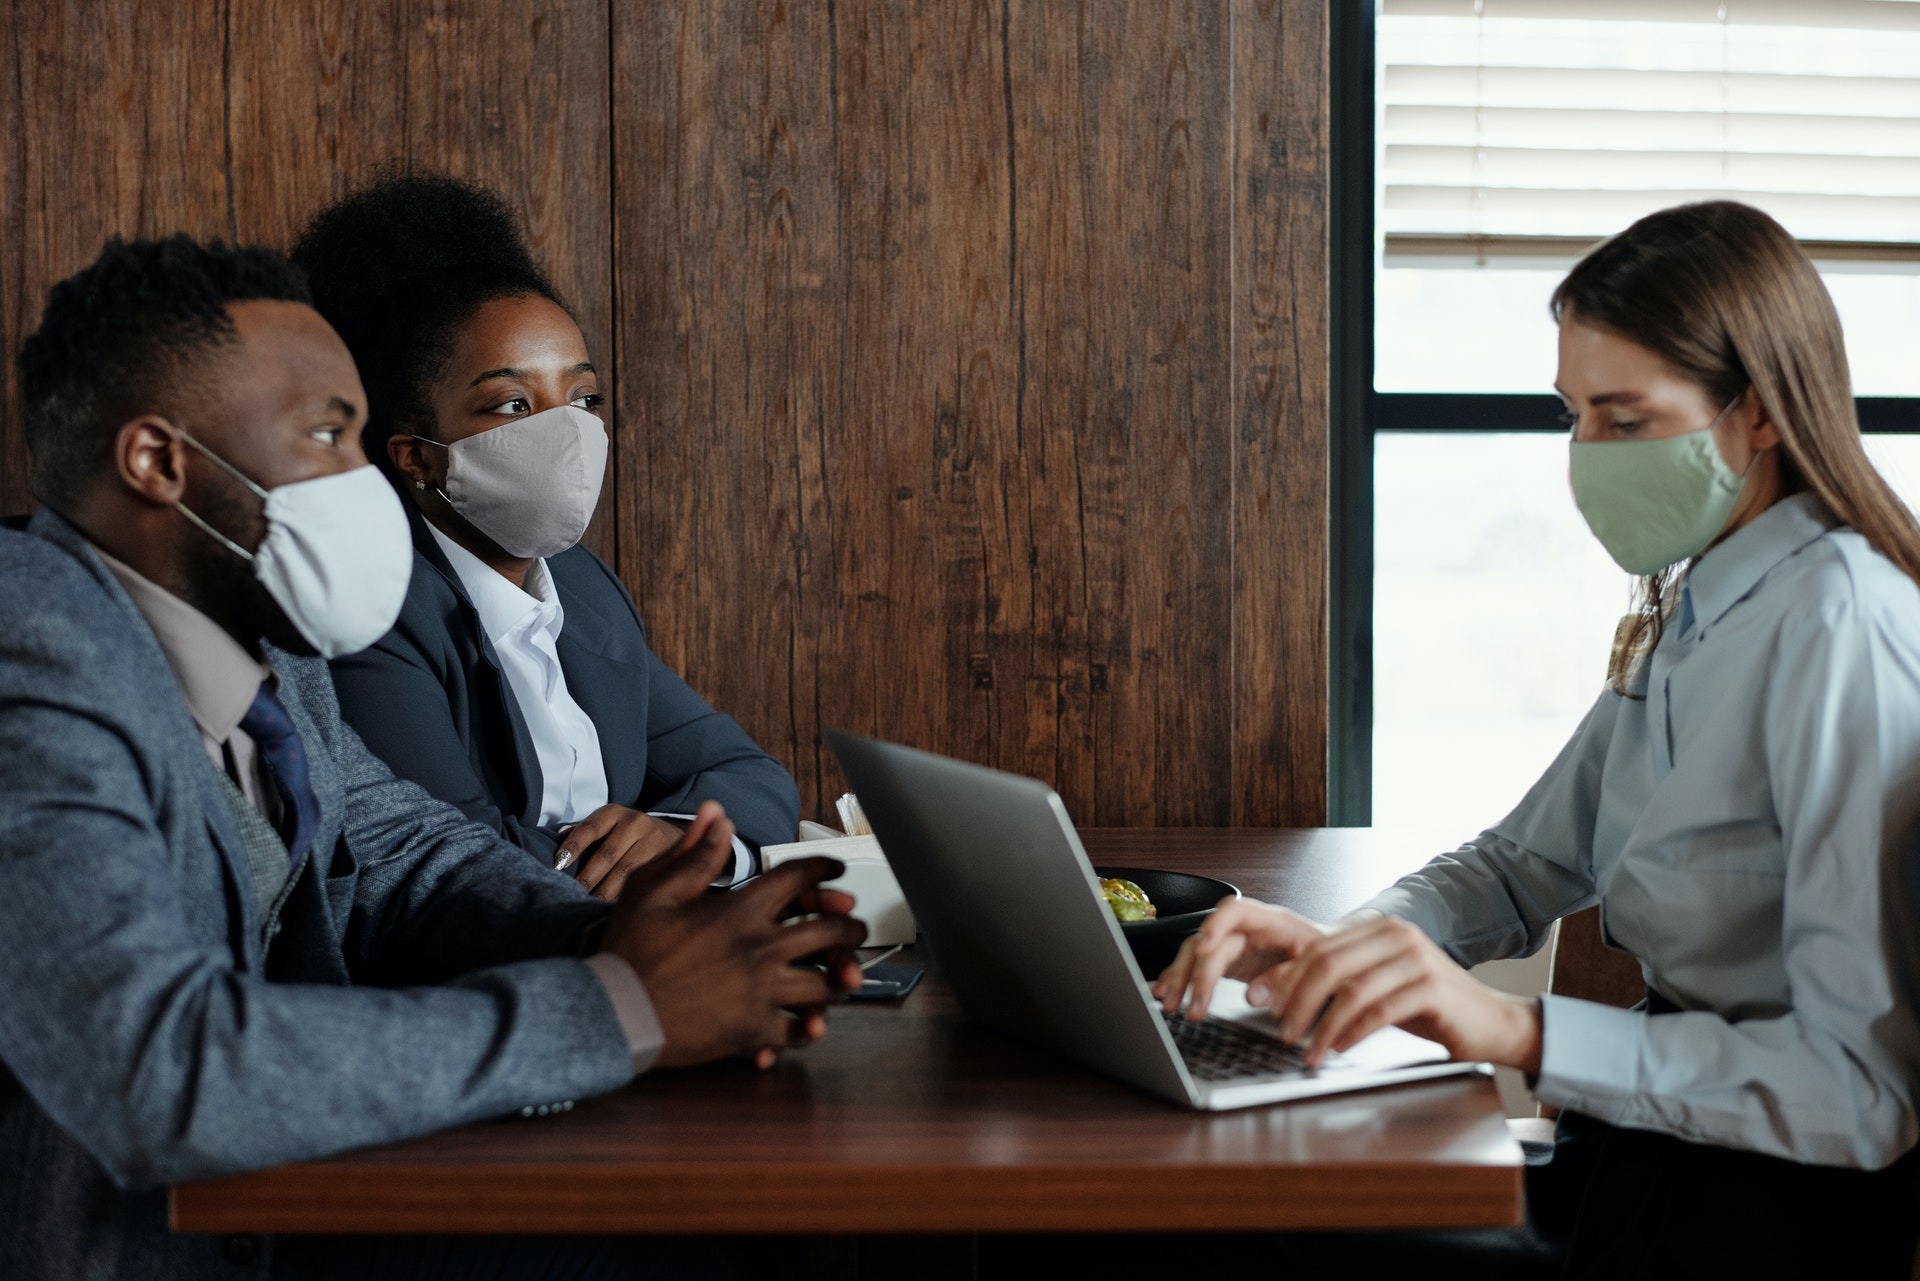 masked couple meeting with masked woman using laptop computer